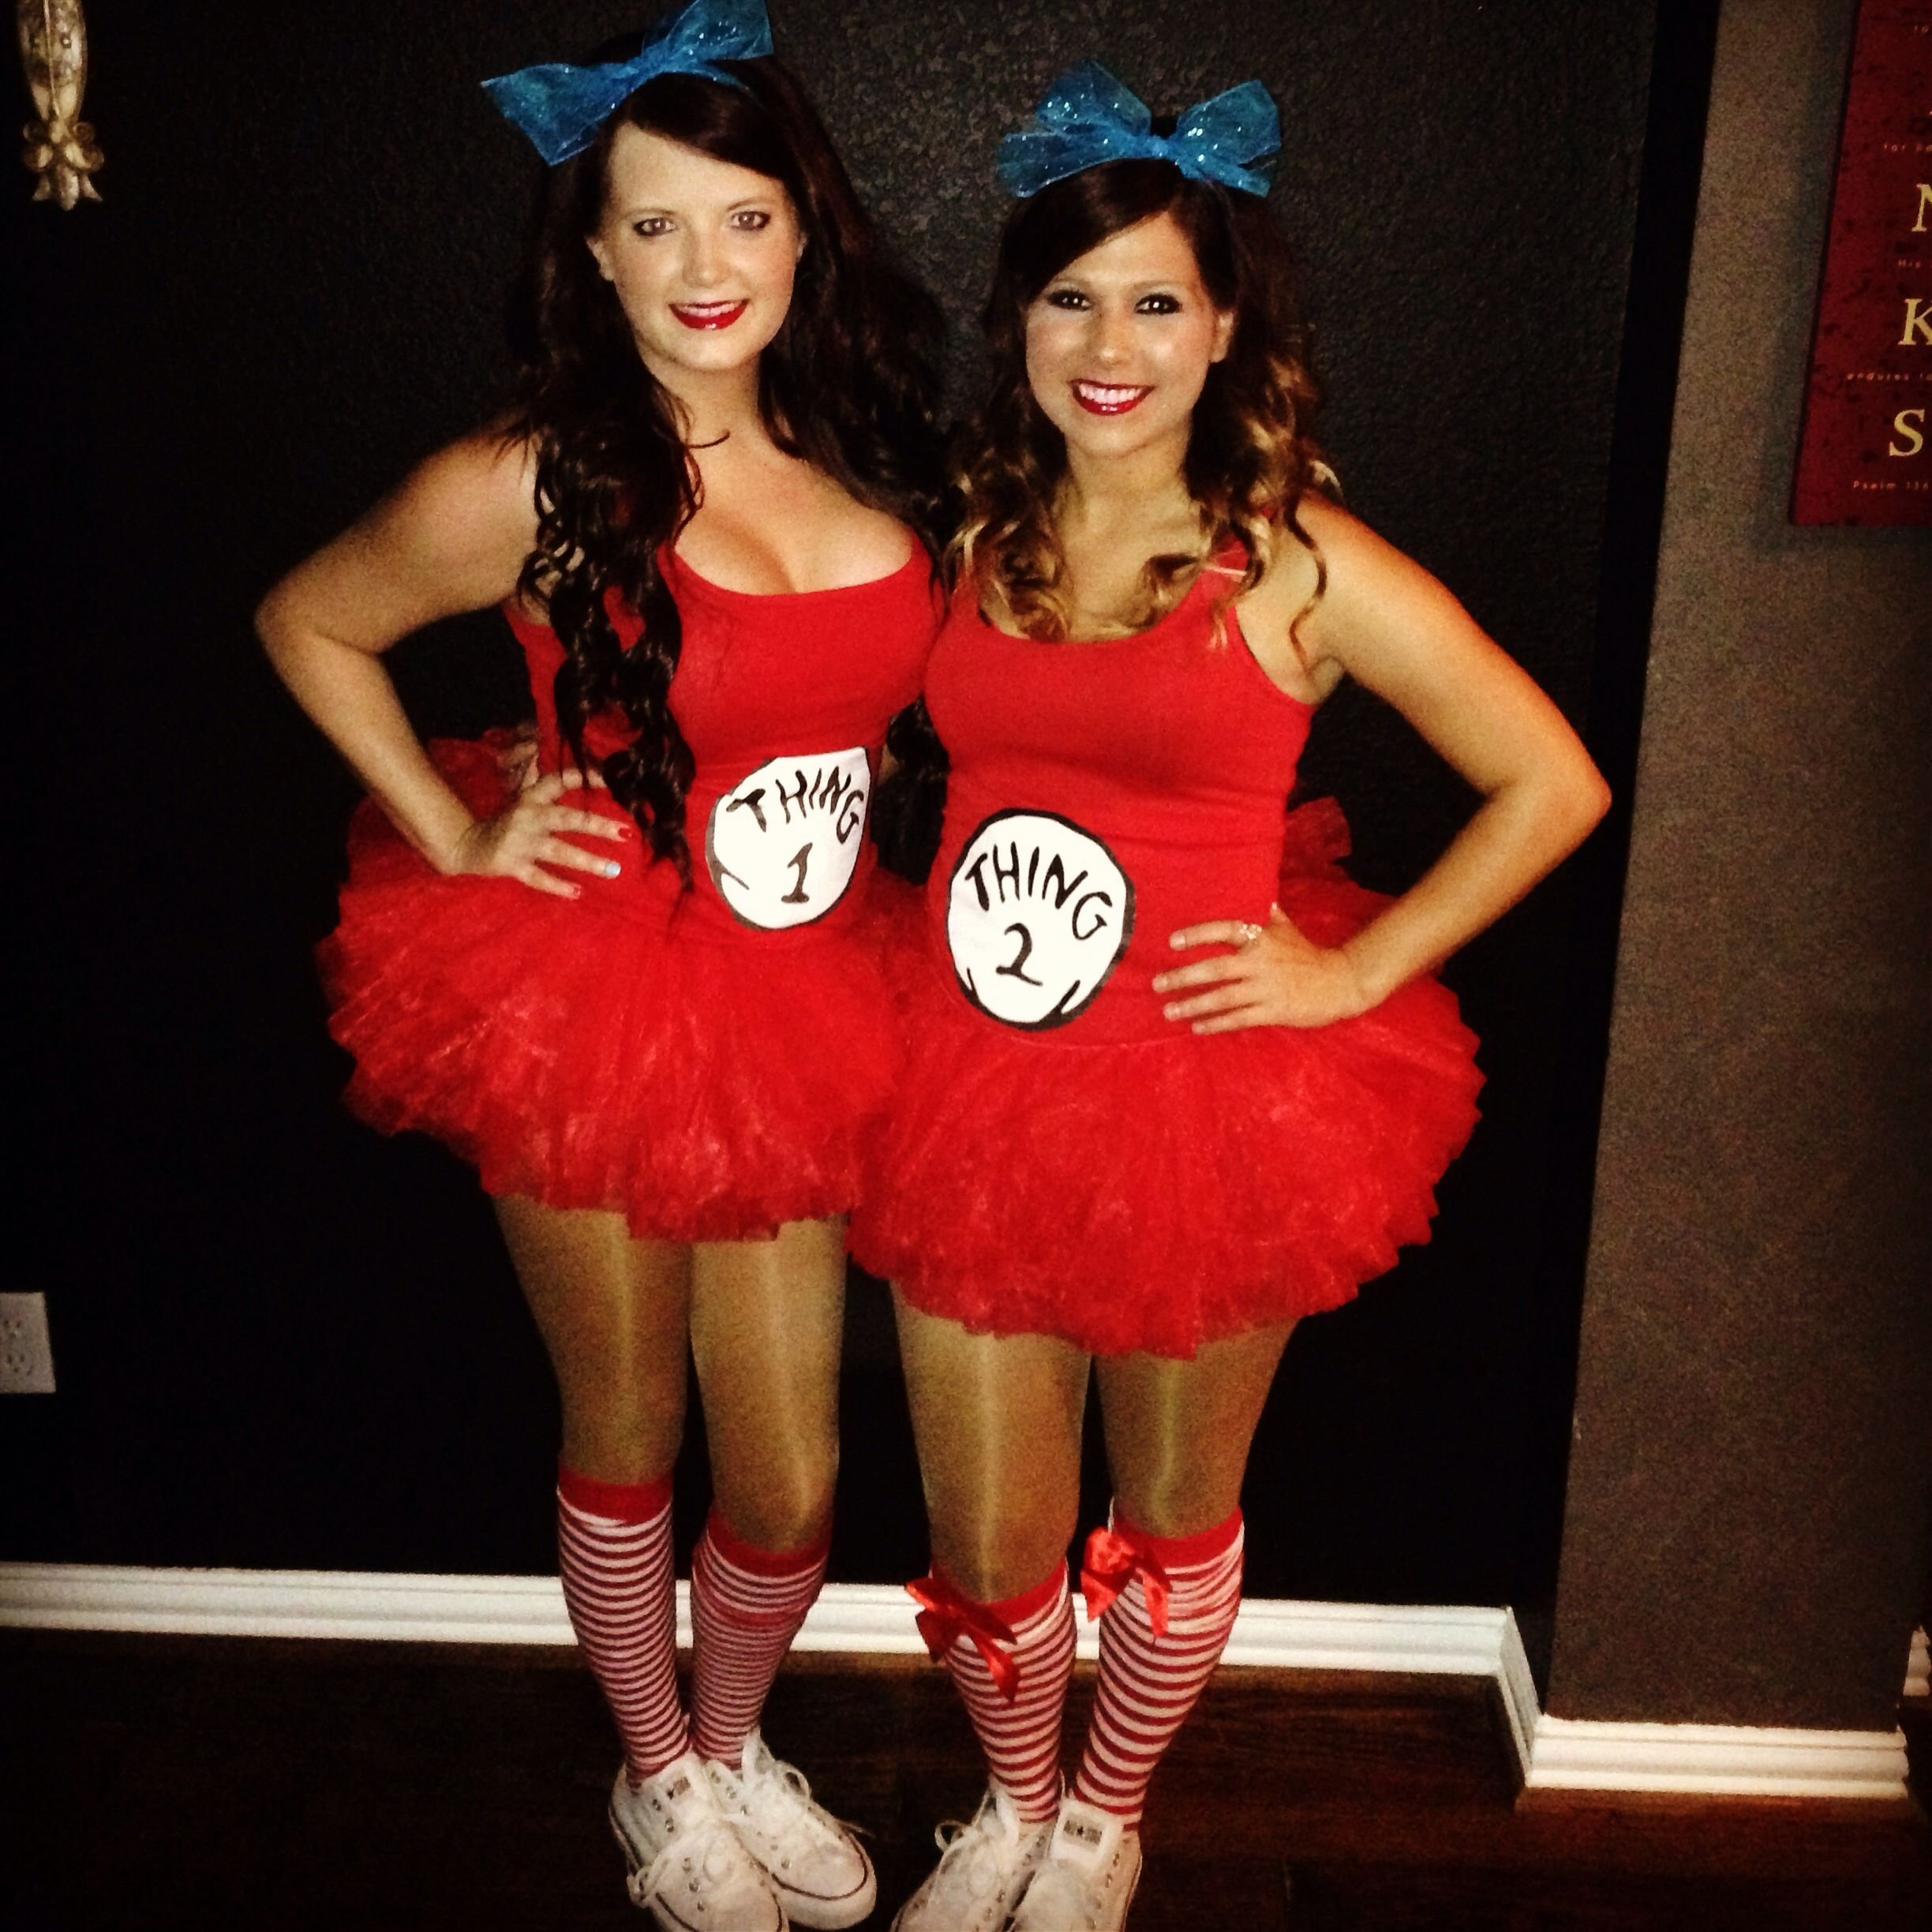 10 Lovely Costume Ideas For Two Women thing 1 and thing 2 costumes cute fashion pinterest costumes 1 2020